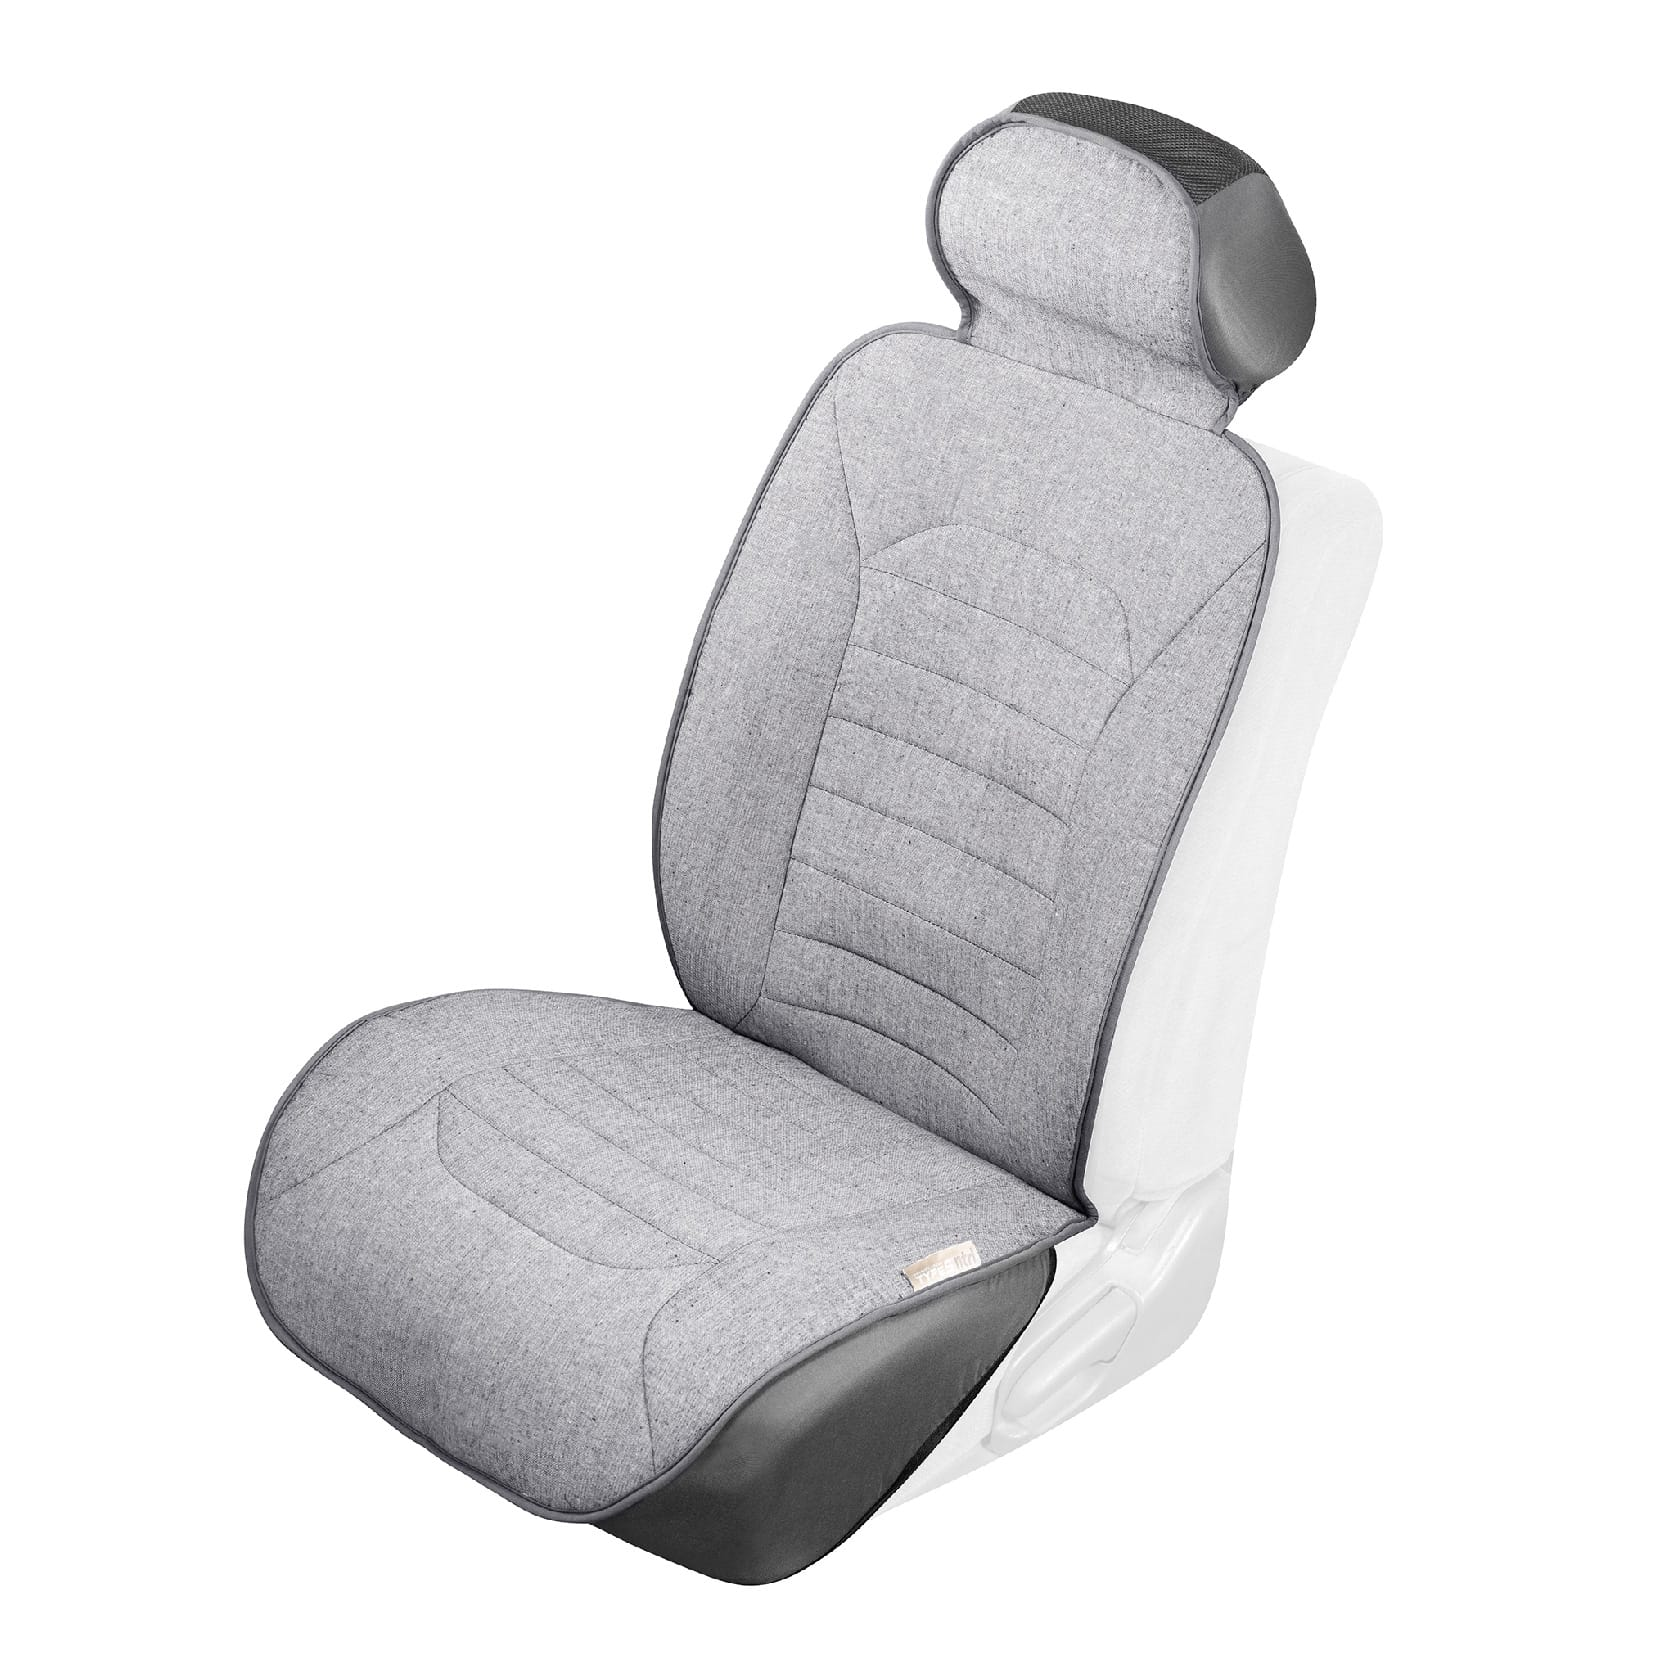 Where Can I Find Seat Covers Seat Covers Type S Auto